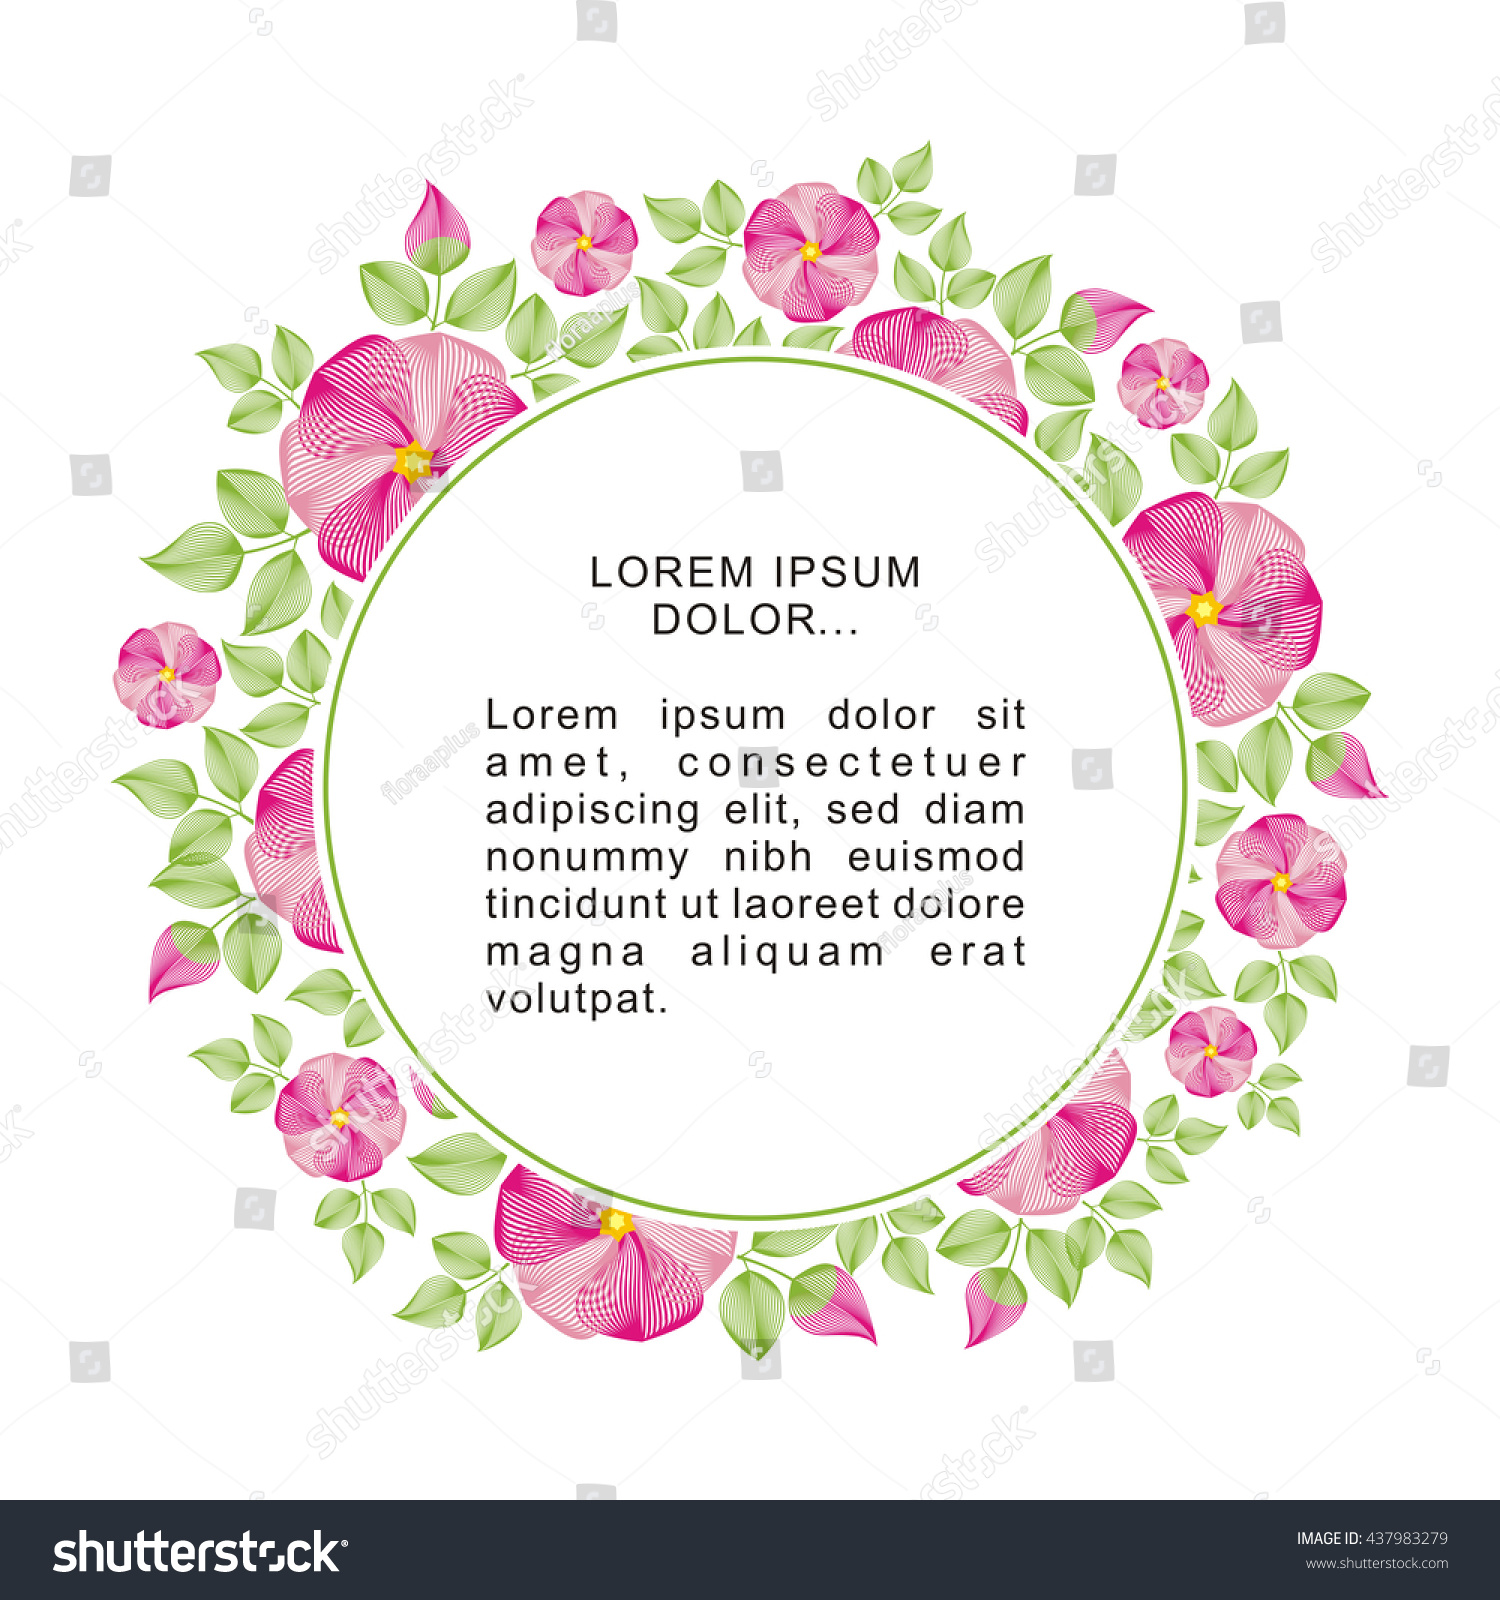 https://image.shutterstock.com/z/stock-photo-bright-round-frame-with-flowers-of-a-dogrose-design-with-the-place-for-the-text-for-natural-437983279.jpg